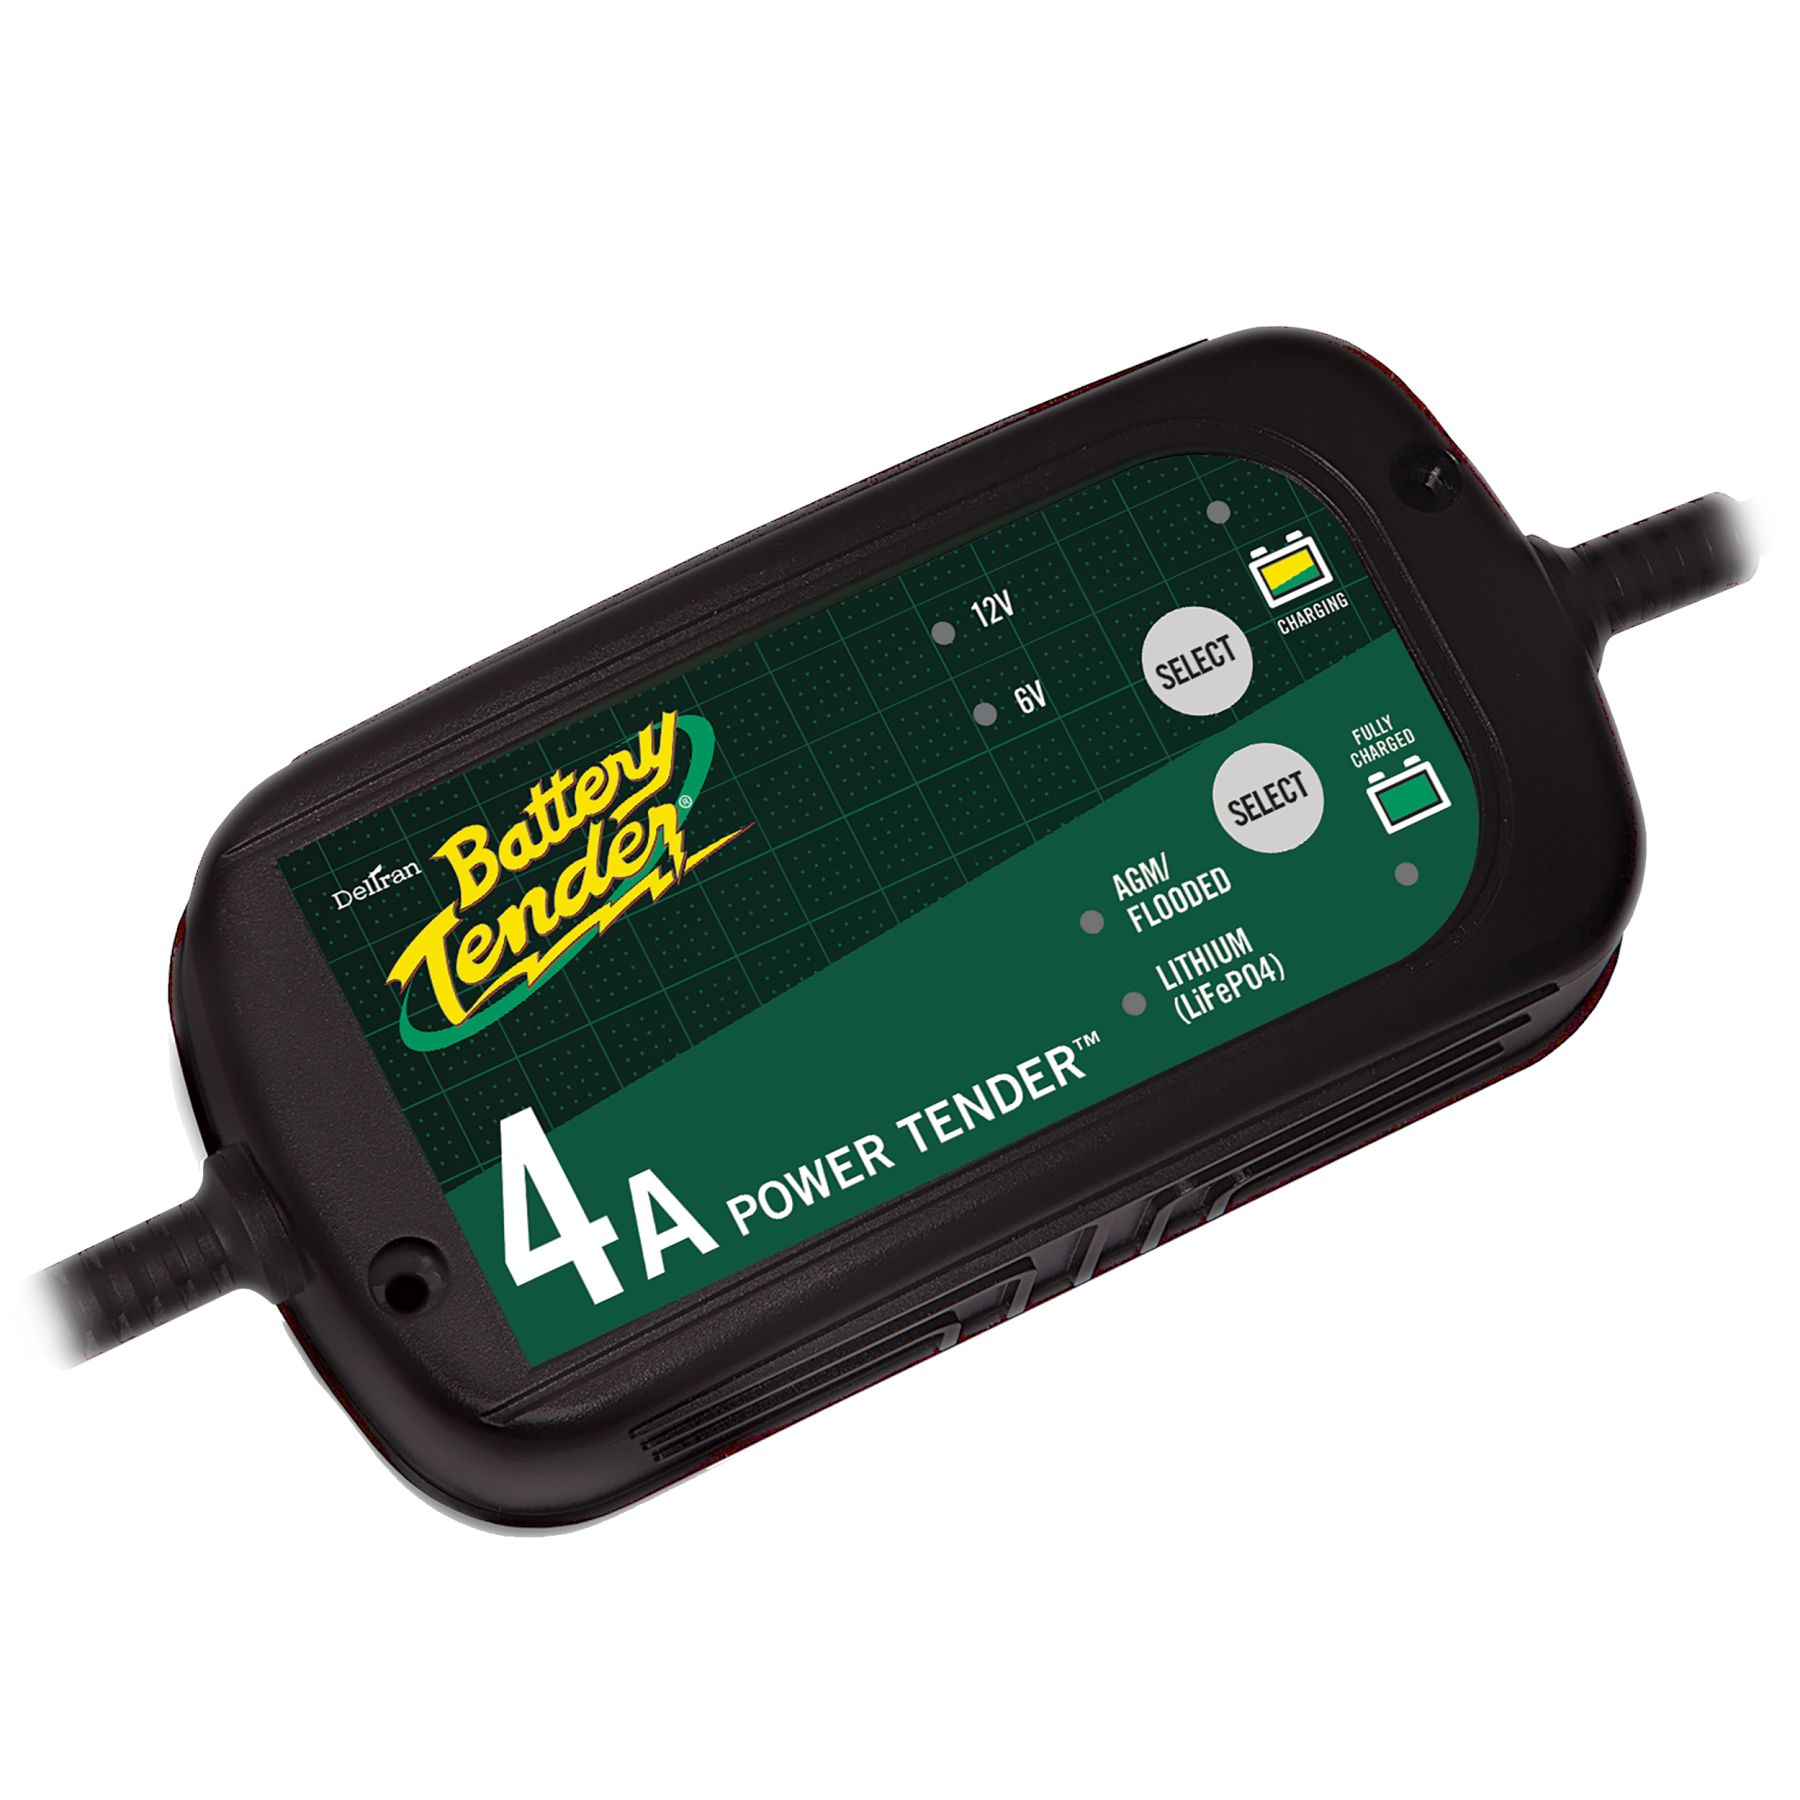 022 0209 Dl Wh Battery Tender 6v 12v 4 Amp Lead Acid Lithium Charger Note Or You Can Use This Automatic 6v12v With